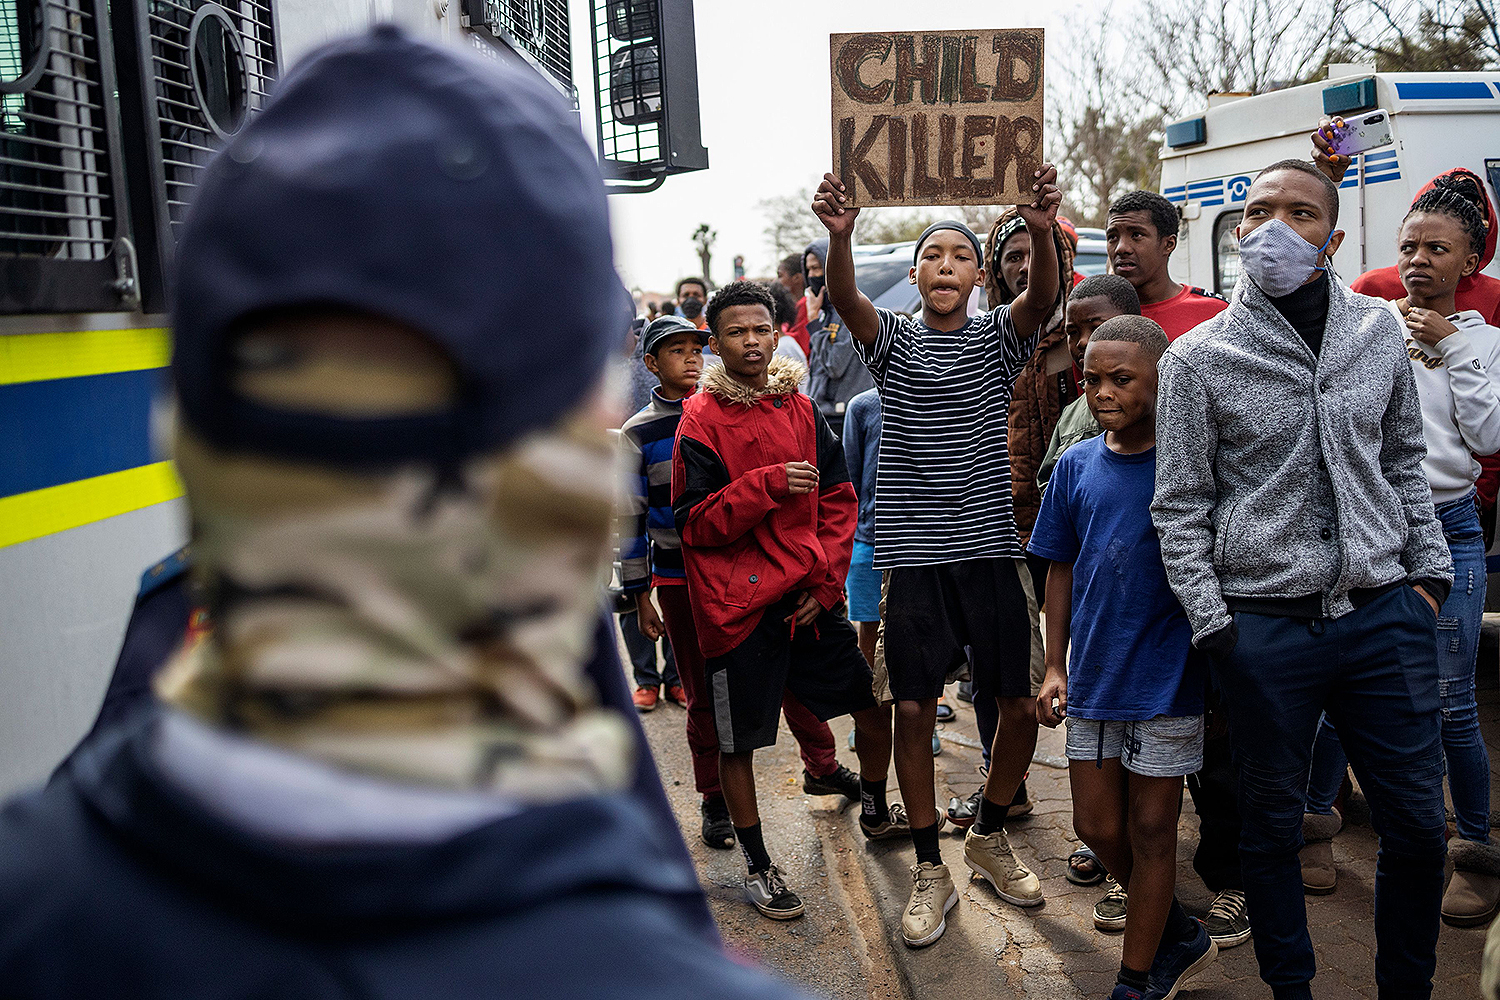 "A resident holds up a ""Child Killer"" sign near members of the South African Police Service in Eldorado Park, near Johannesburg, on Aug. 27 during a protest after a 16-year-old boy was shot and killed by police. MICHELE SPATARI/AFP via Getty Images"